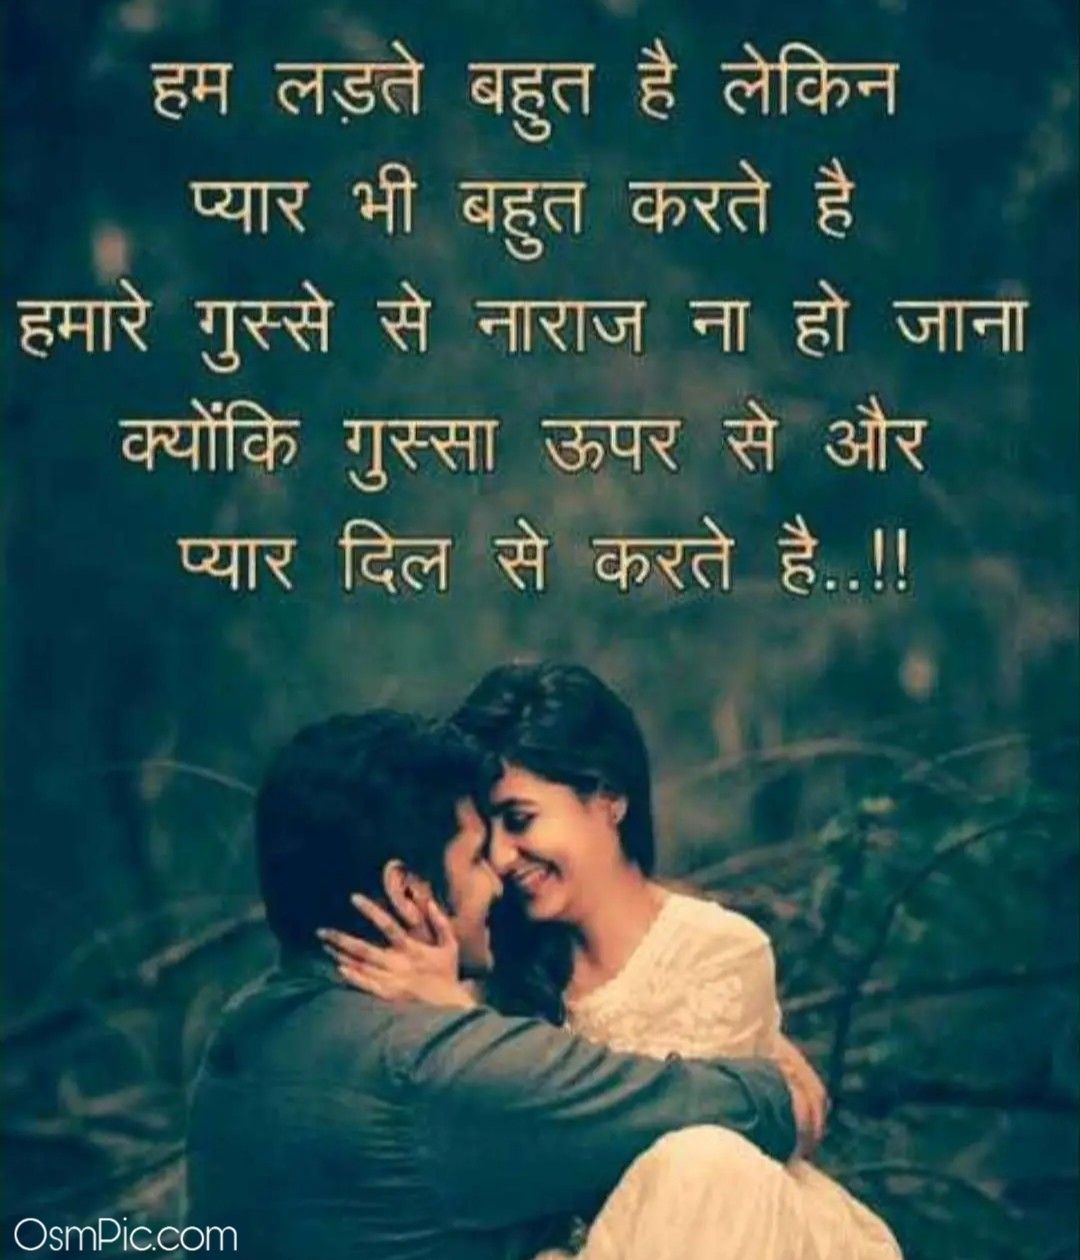 Top 100 True Love Hindi Shayari Images Download Love Picture Quotes Romantic Images With Quotes Romantic Quotes For Girlfriend